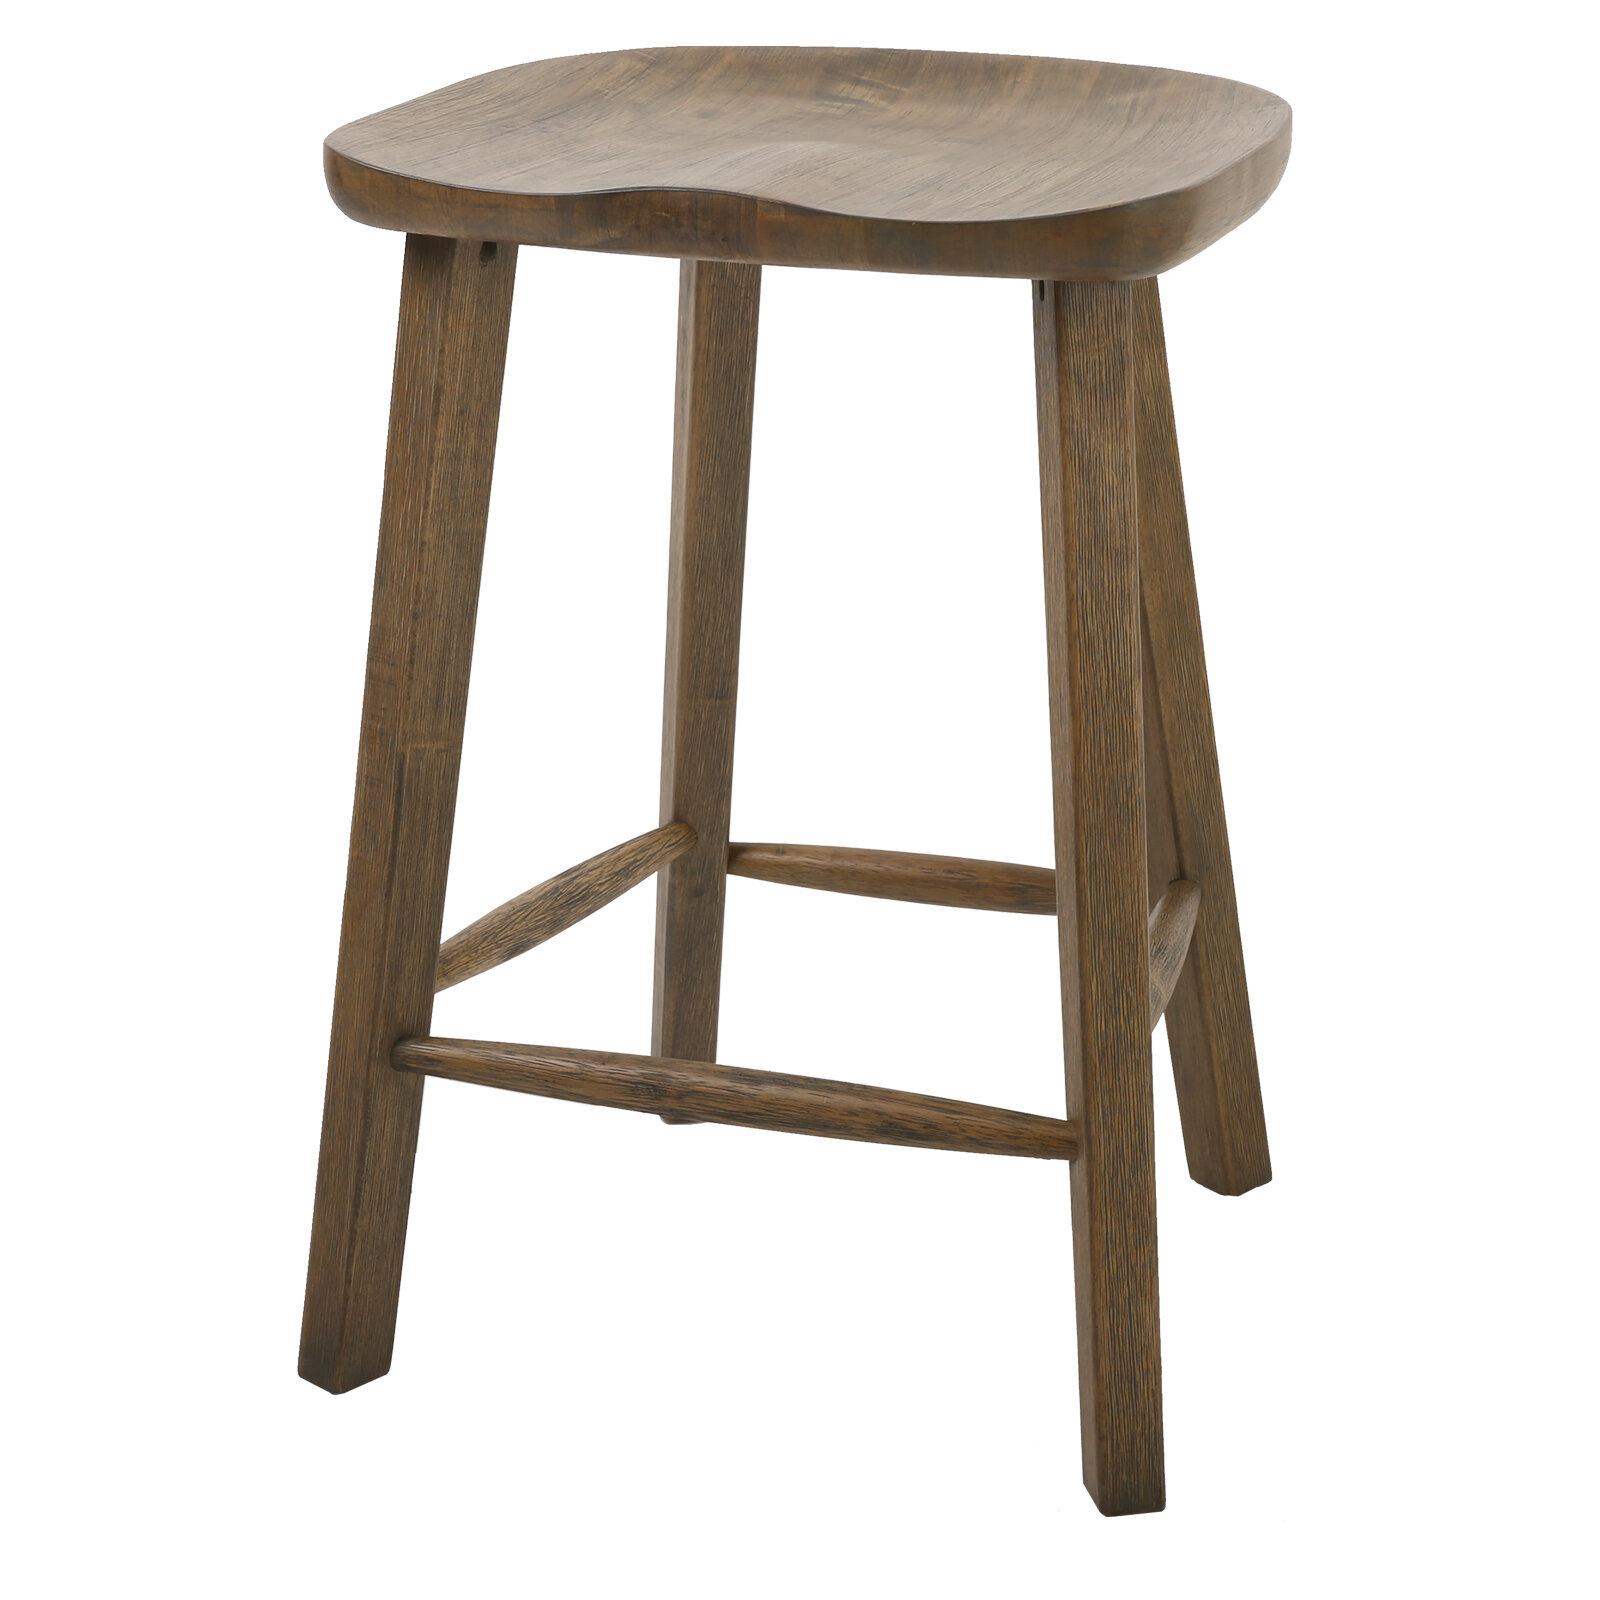 Peachy Penelope Tractor Style Counter Height 25 Bar Stool Pabps2019 Chair Design Images Pabps2019Com